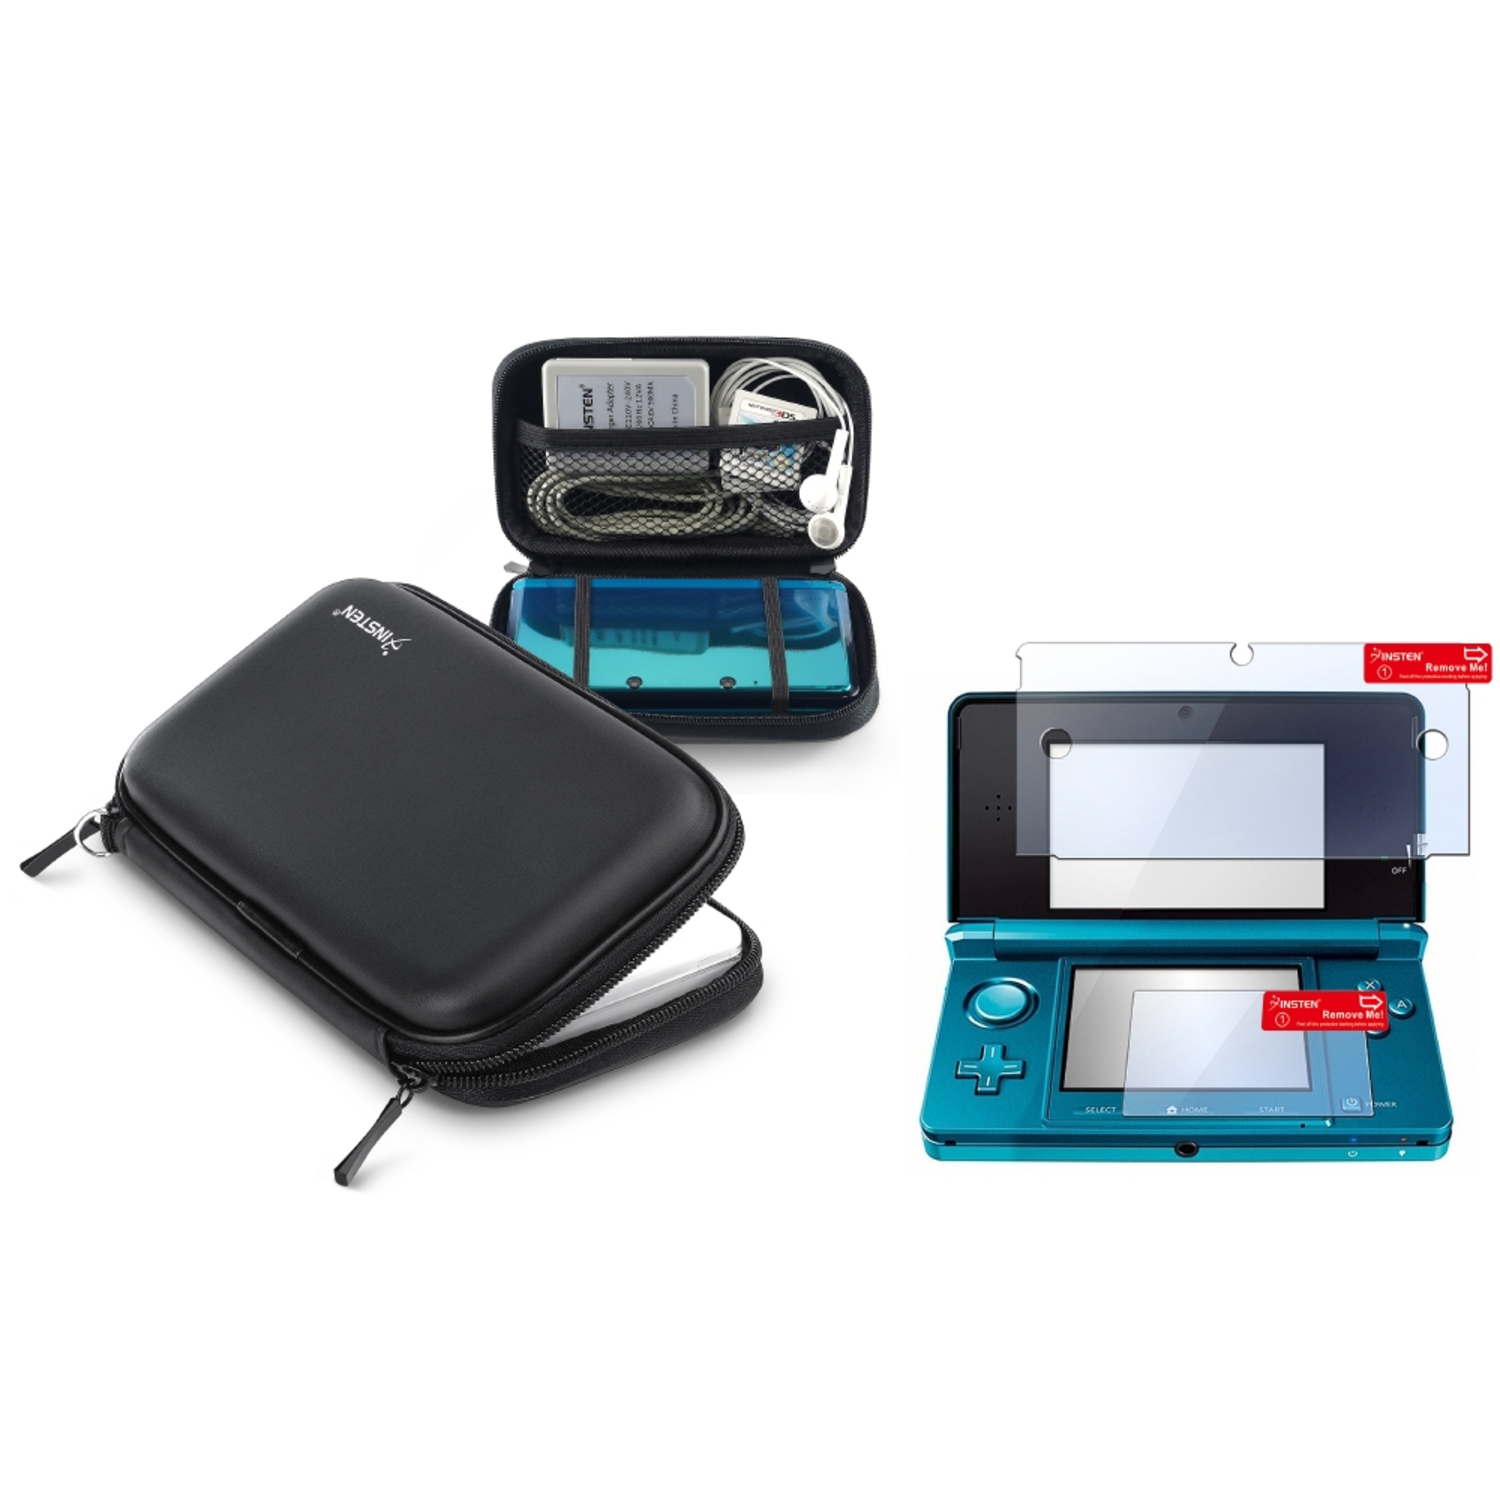 Insten For Nintendo 3DS BLACK EVA CASE WITH SCREEN PROTECTOR